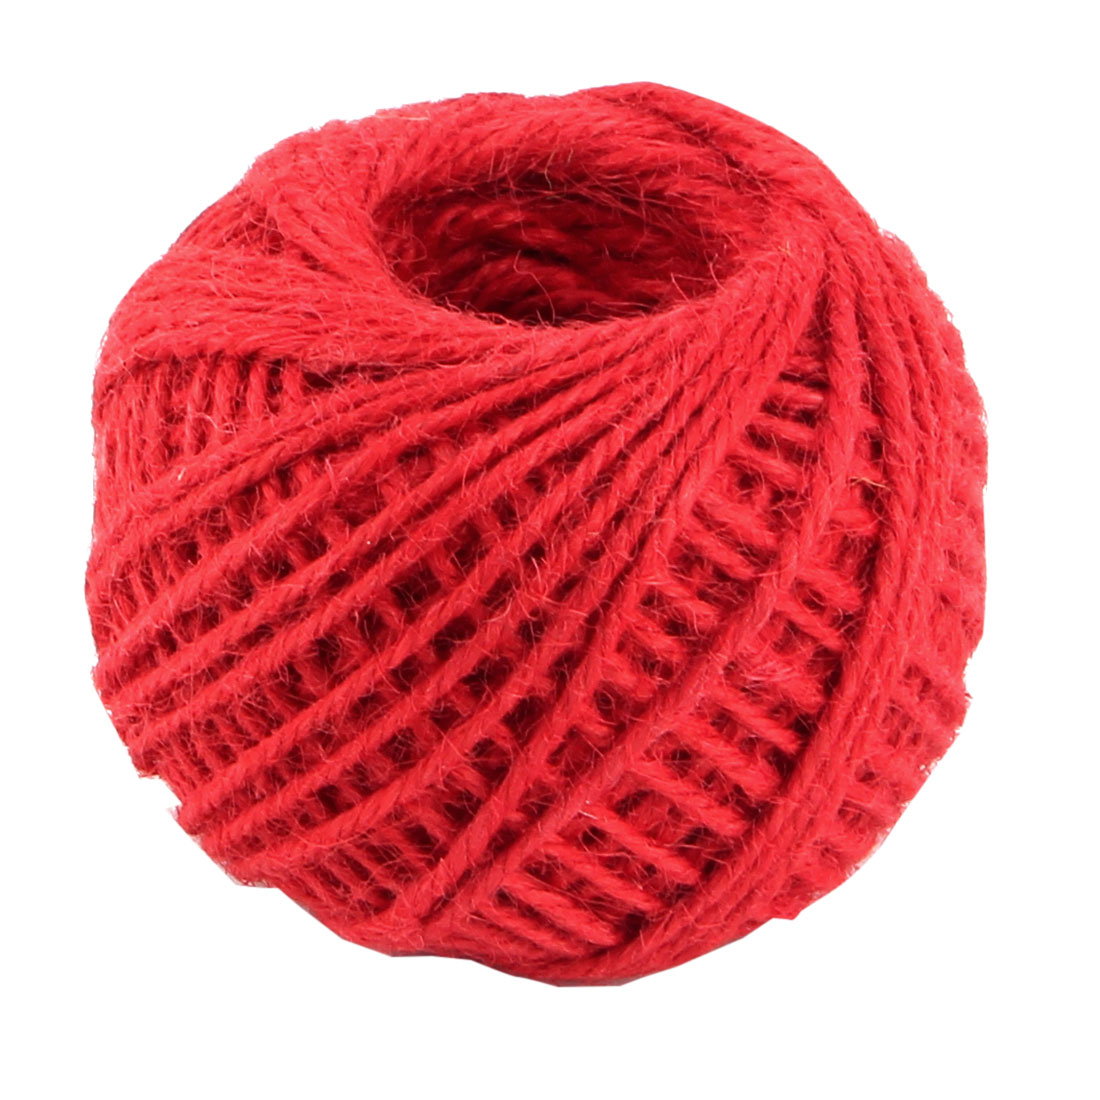 Unique Bargains 2mm Dia 50m Length Red Handcraft Gift Tags Jute Burlap Ribbon Twine Cord Rope String Roll